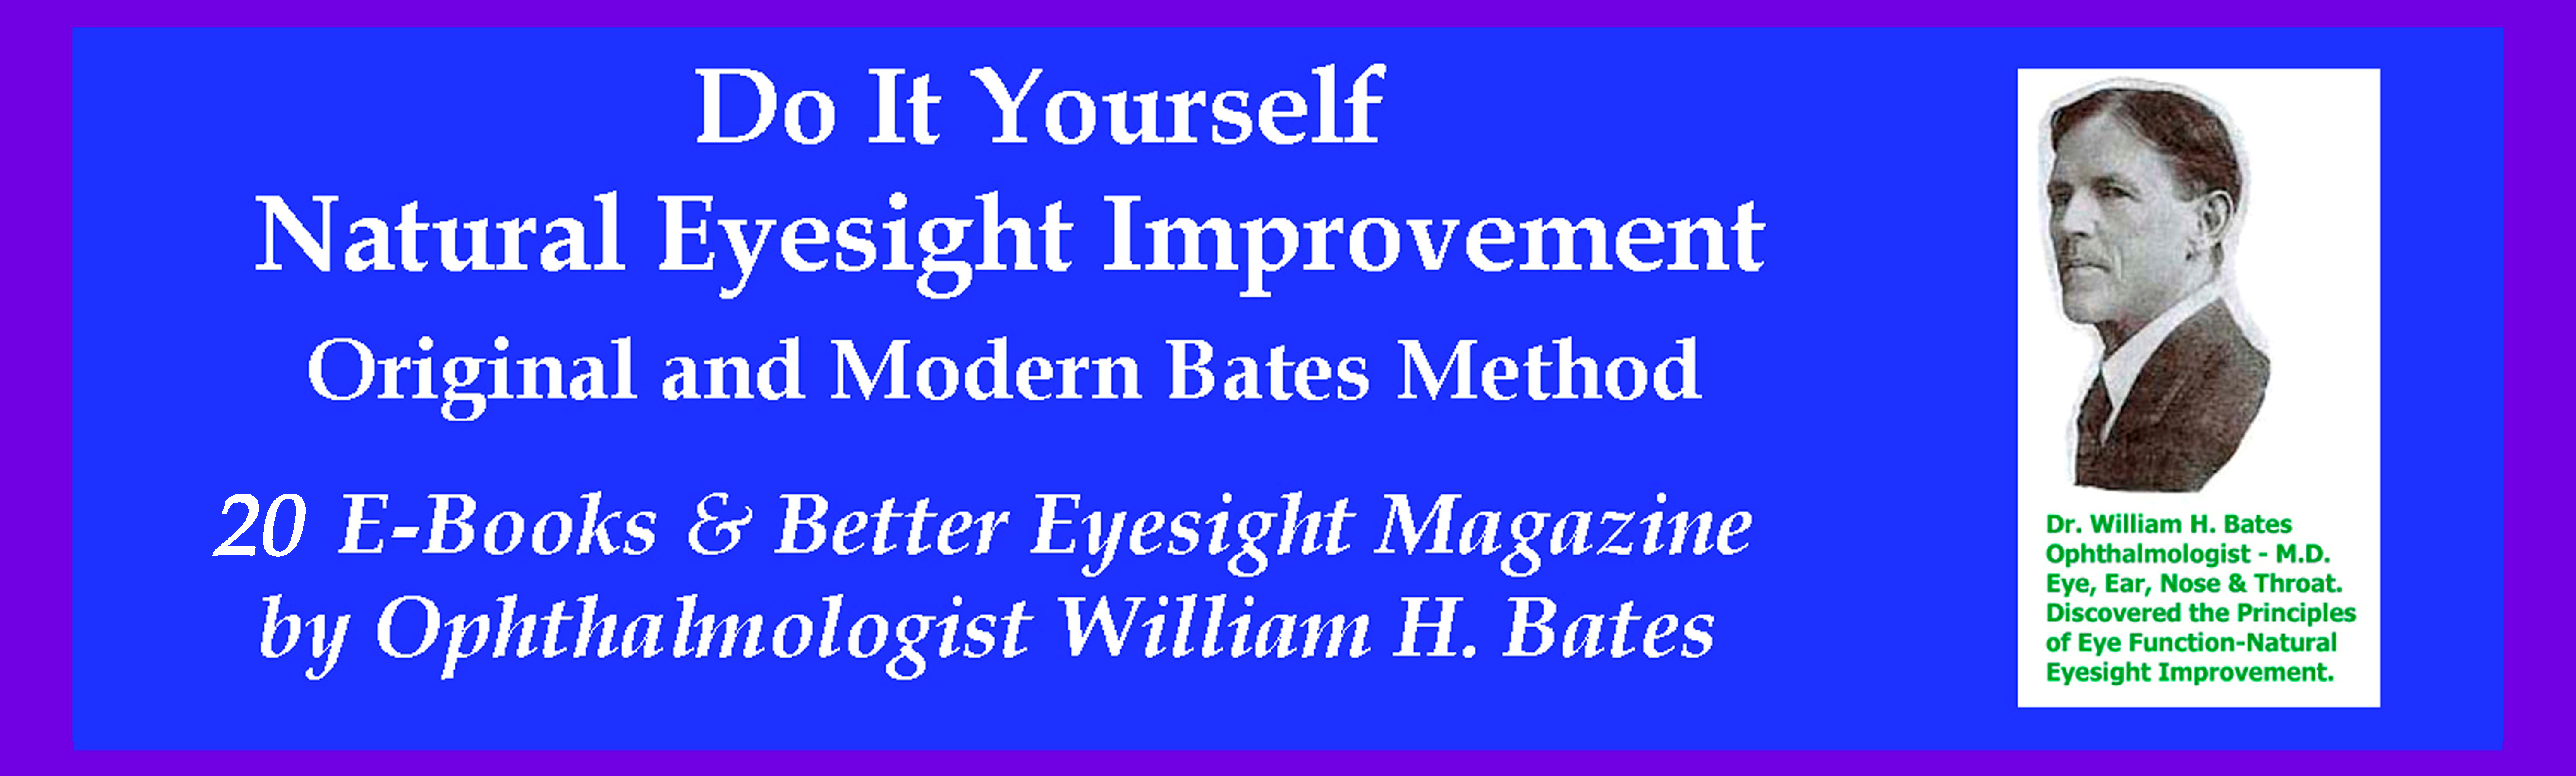 17 E-Books by Ophthalmologist William H. Bates and Clark Night, Clearsight Publishing Co.